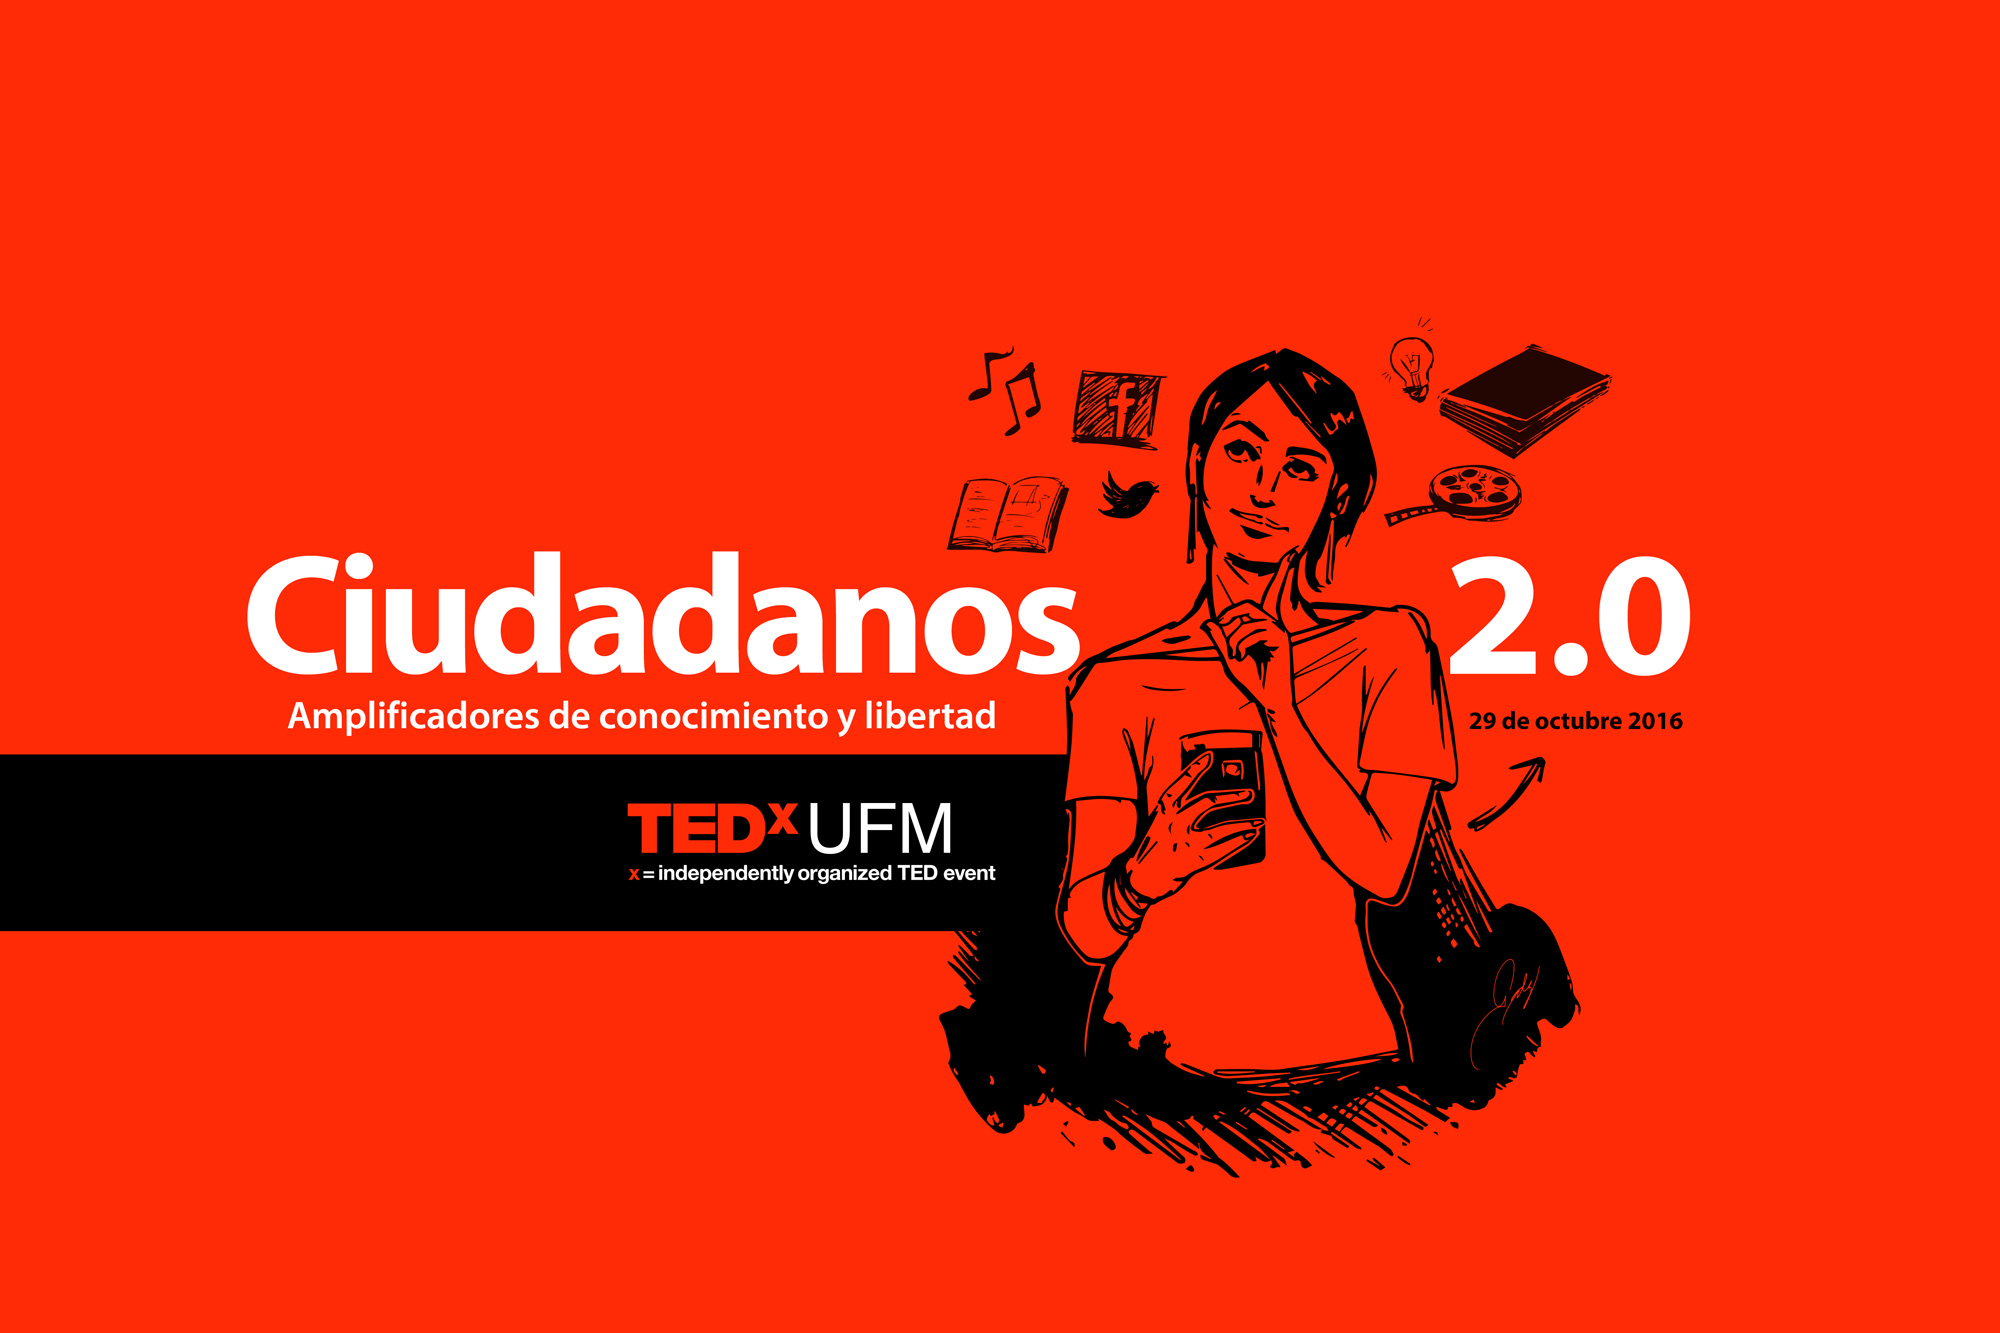 headertedxufm_2